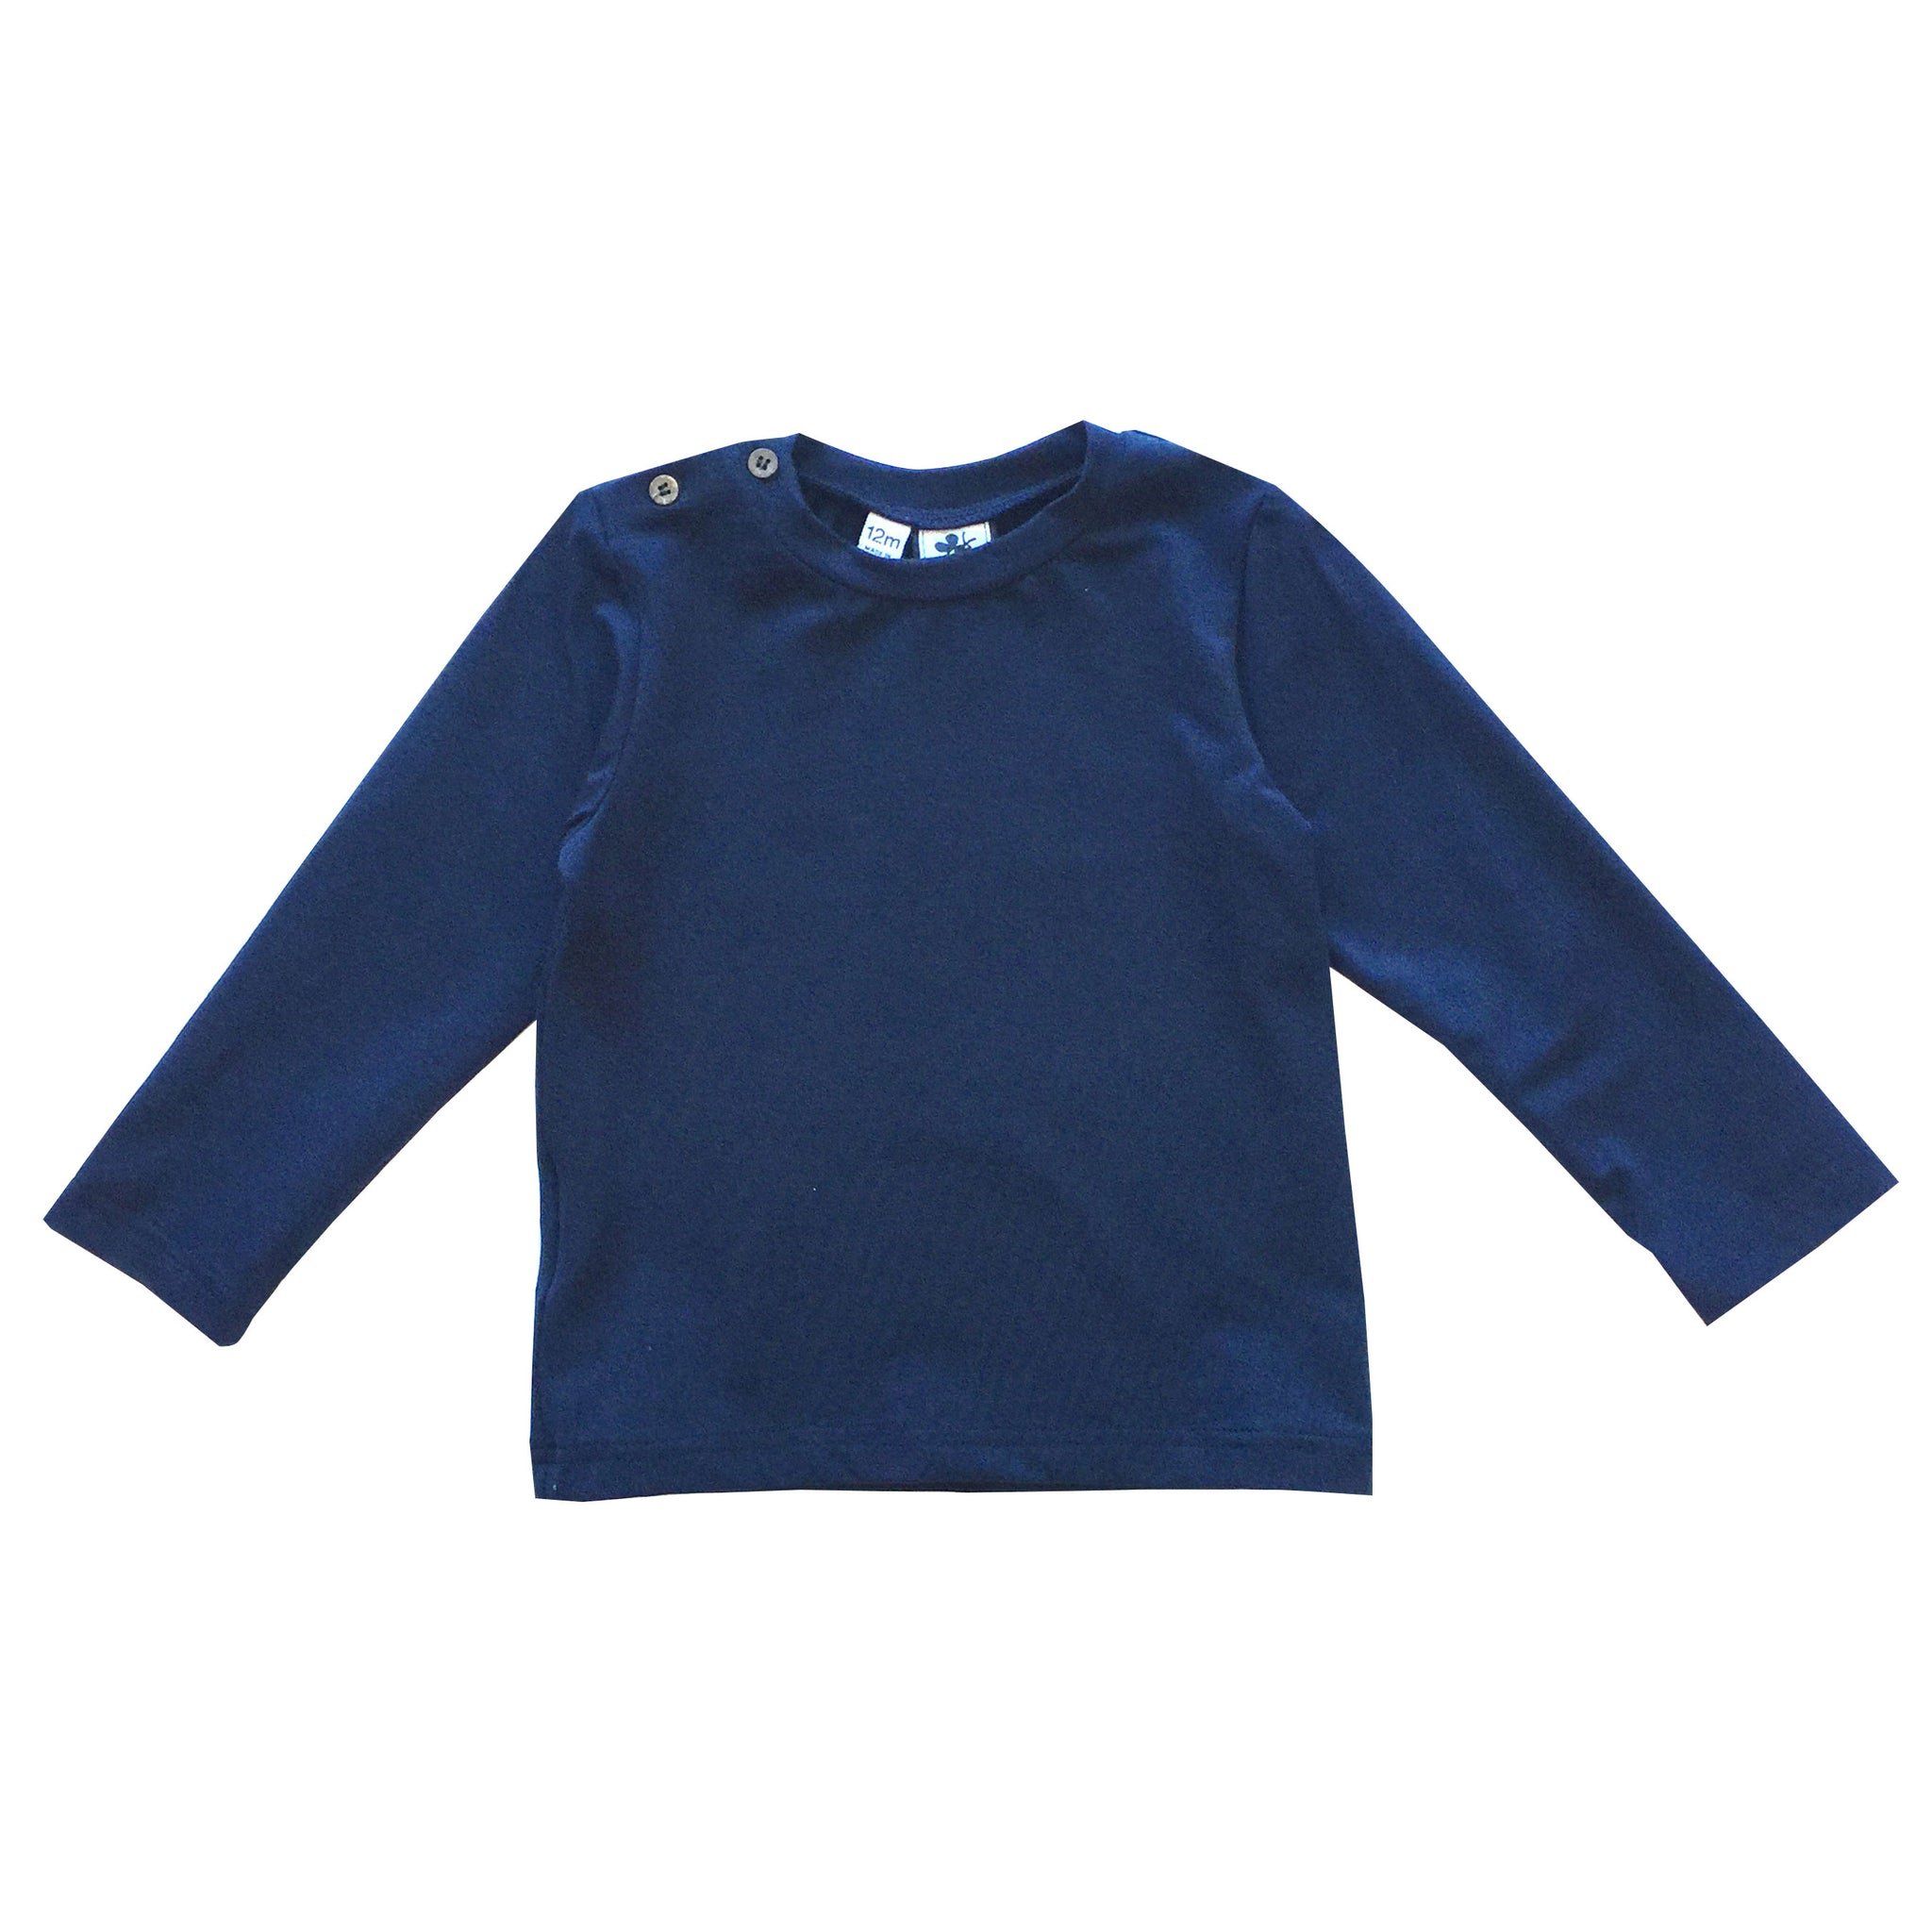 henry button shoulder long sleeve tee navy knit